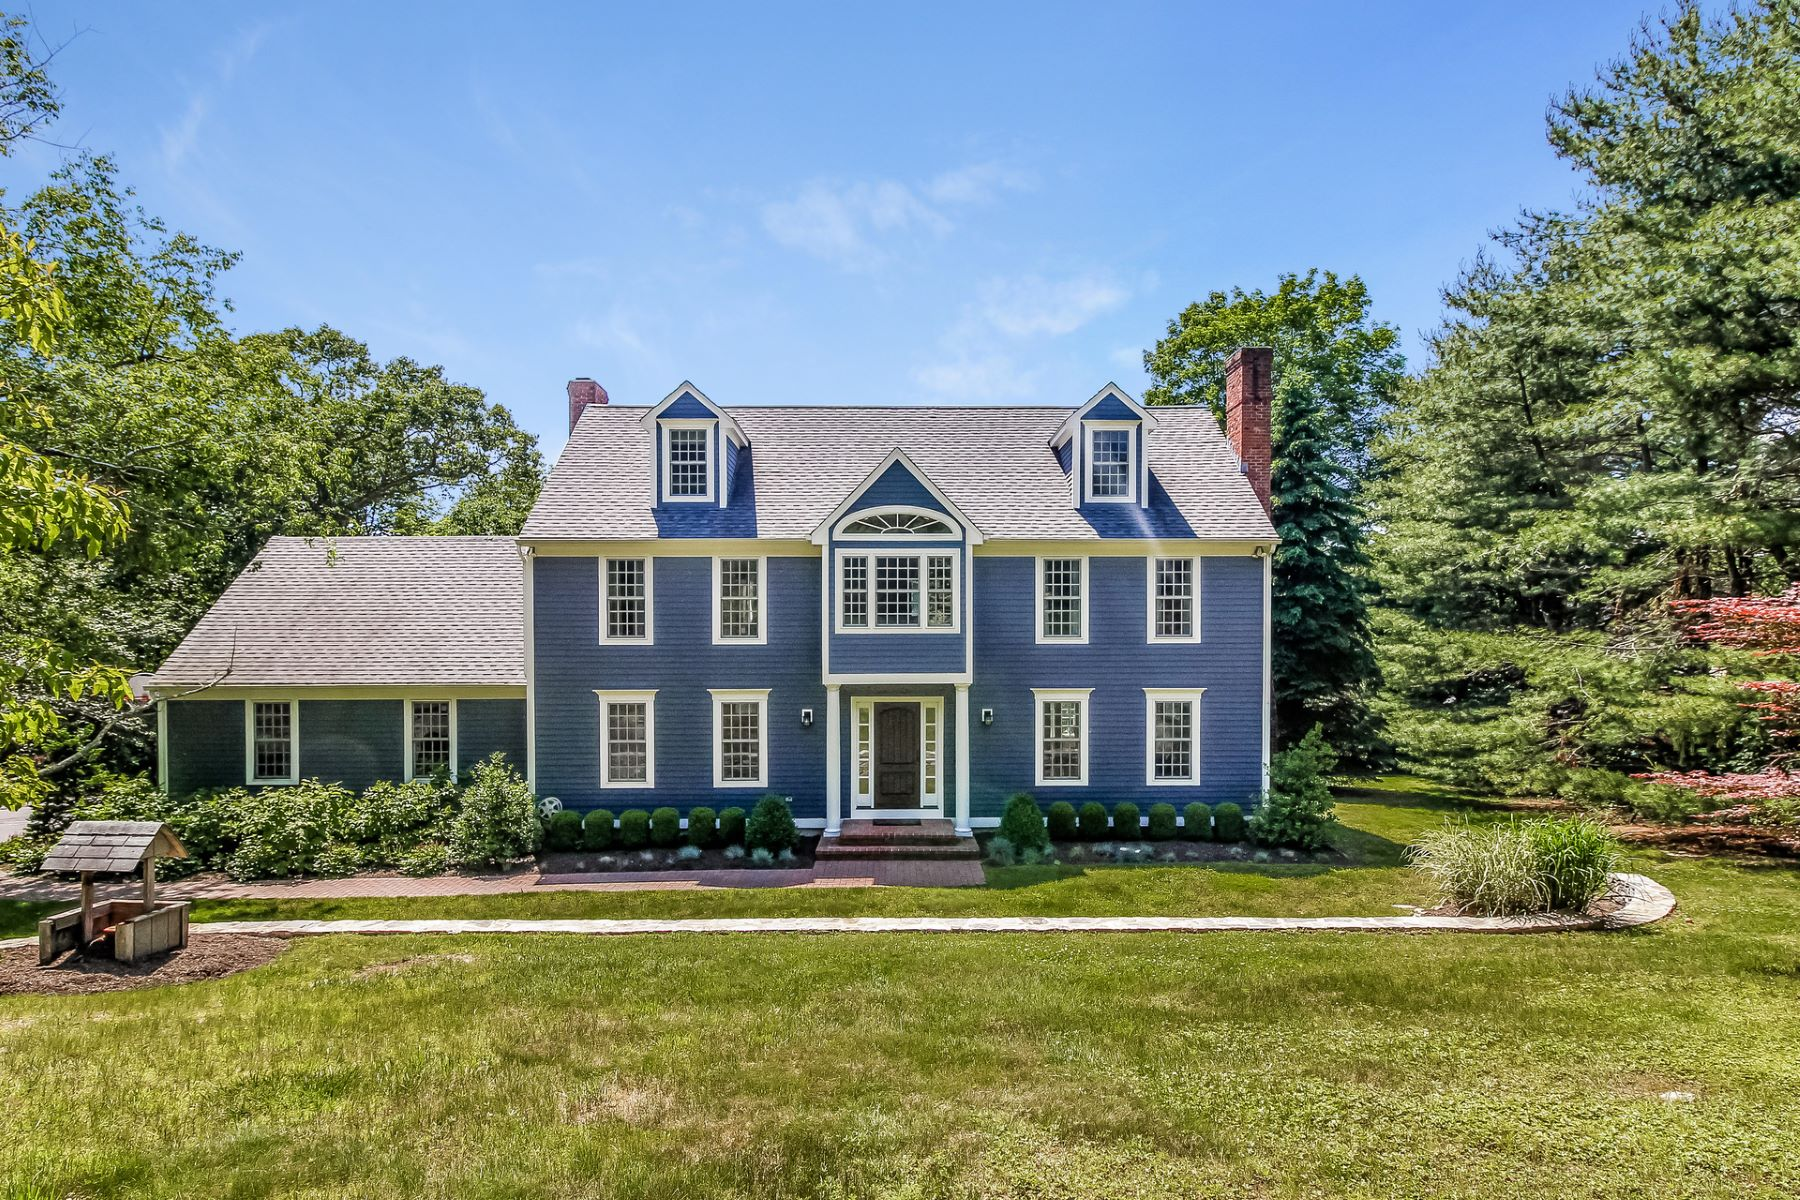 Single Family Homes for Sale at Impressive Colonial in a Desirable Neighborhood 67 Ortner Dr Westbrook, Connecticut 06498 United States